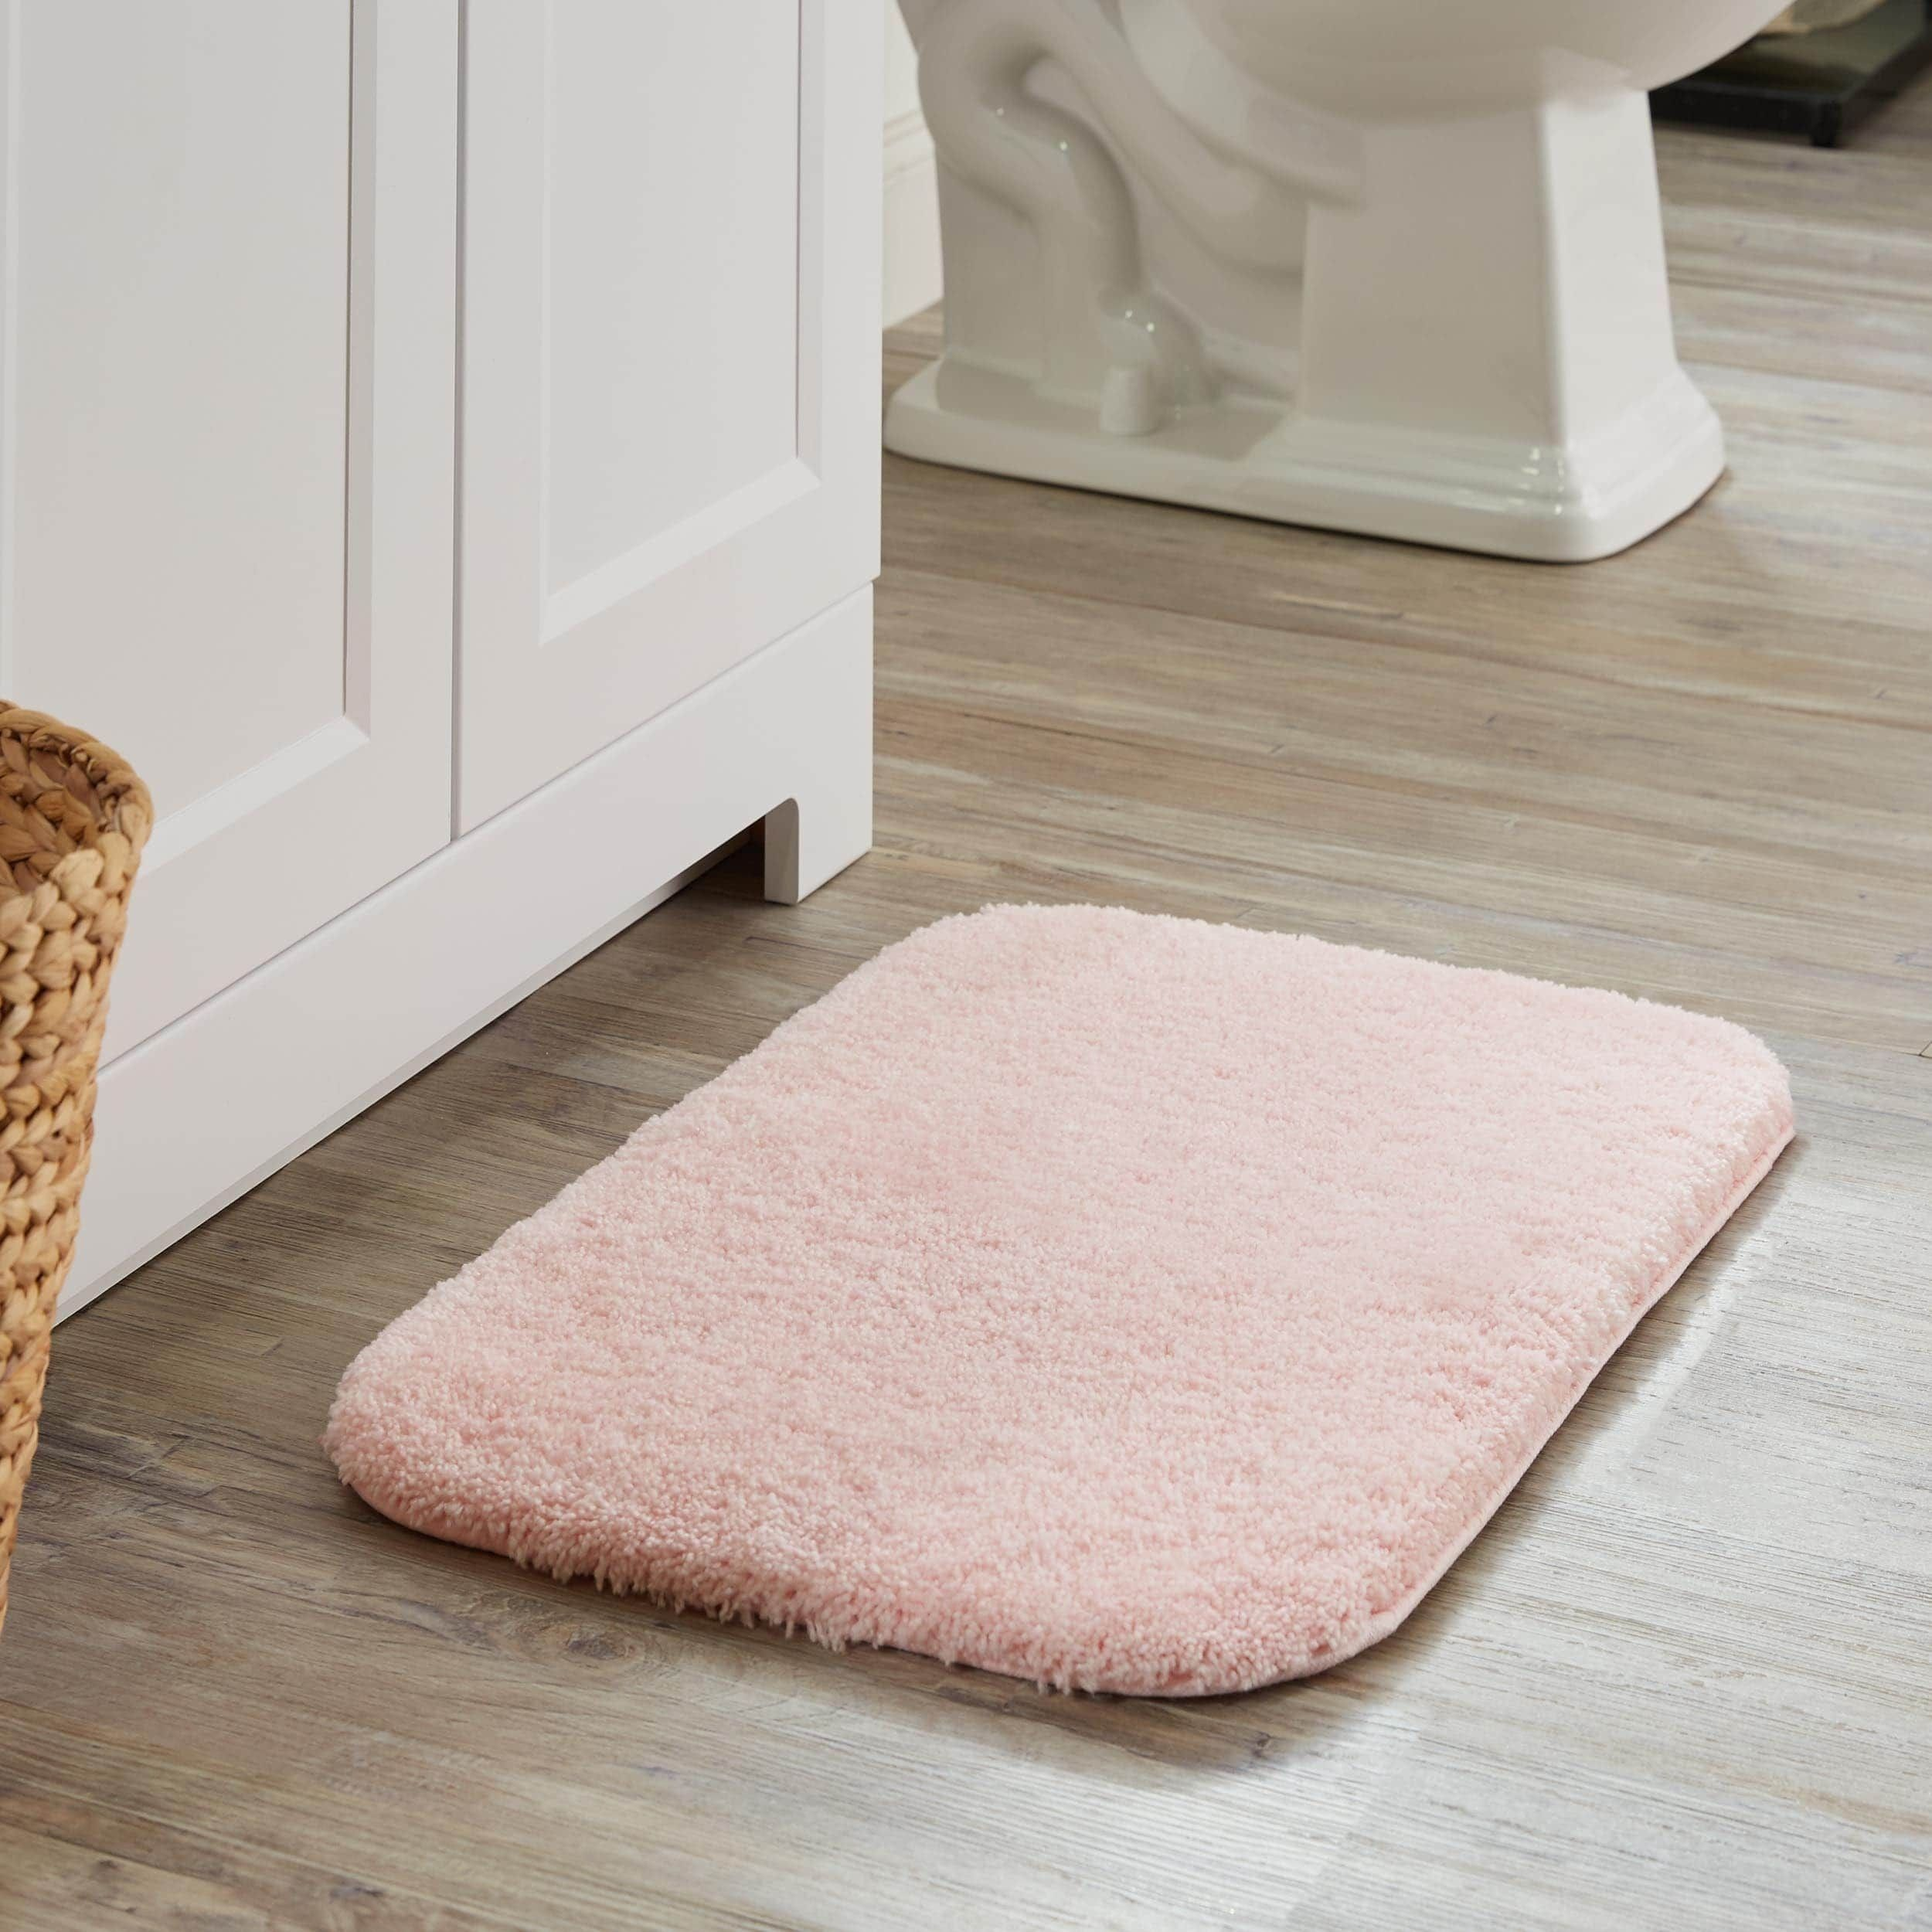 mohawk home spa bath rug 1 5x2 rose pink products rugs rh pinterest ca